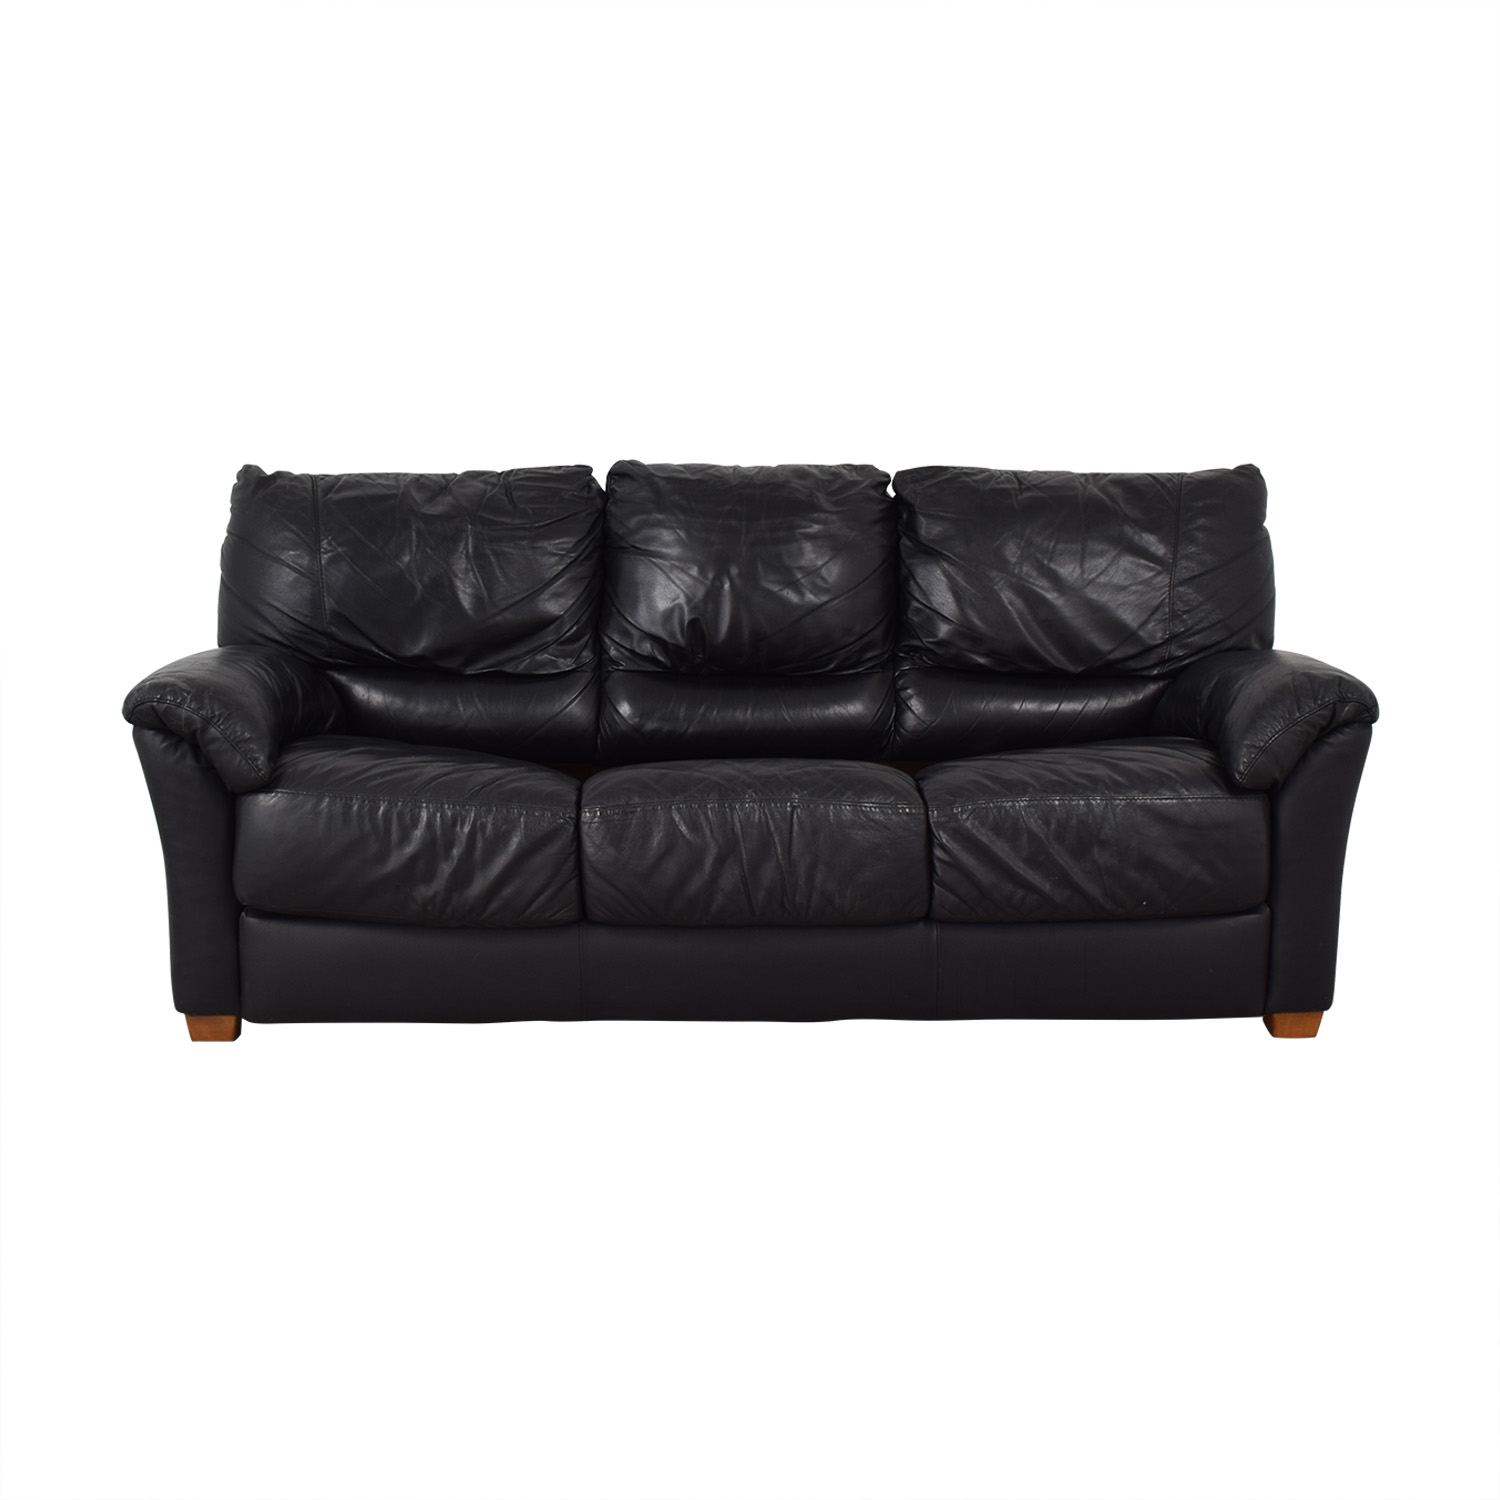 Black Three-Cushion Convertible Full Sleeper Sofa / Classic Sofas